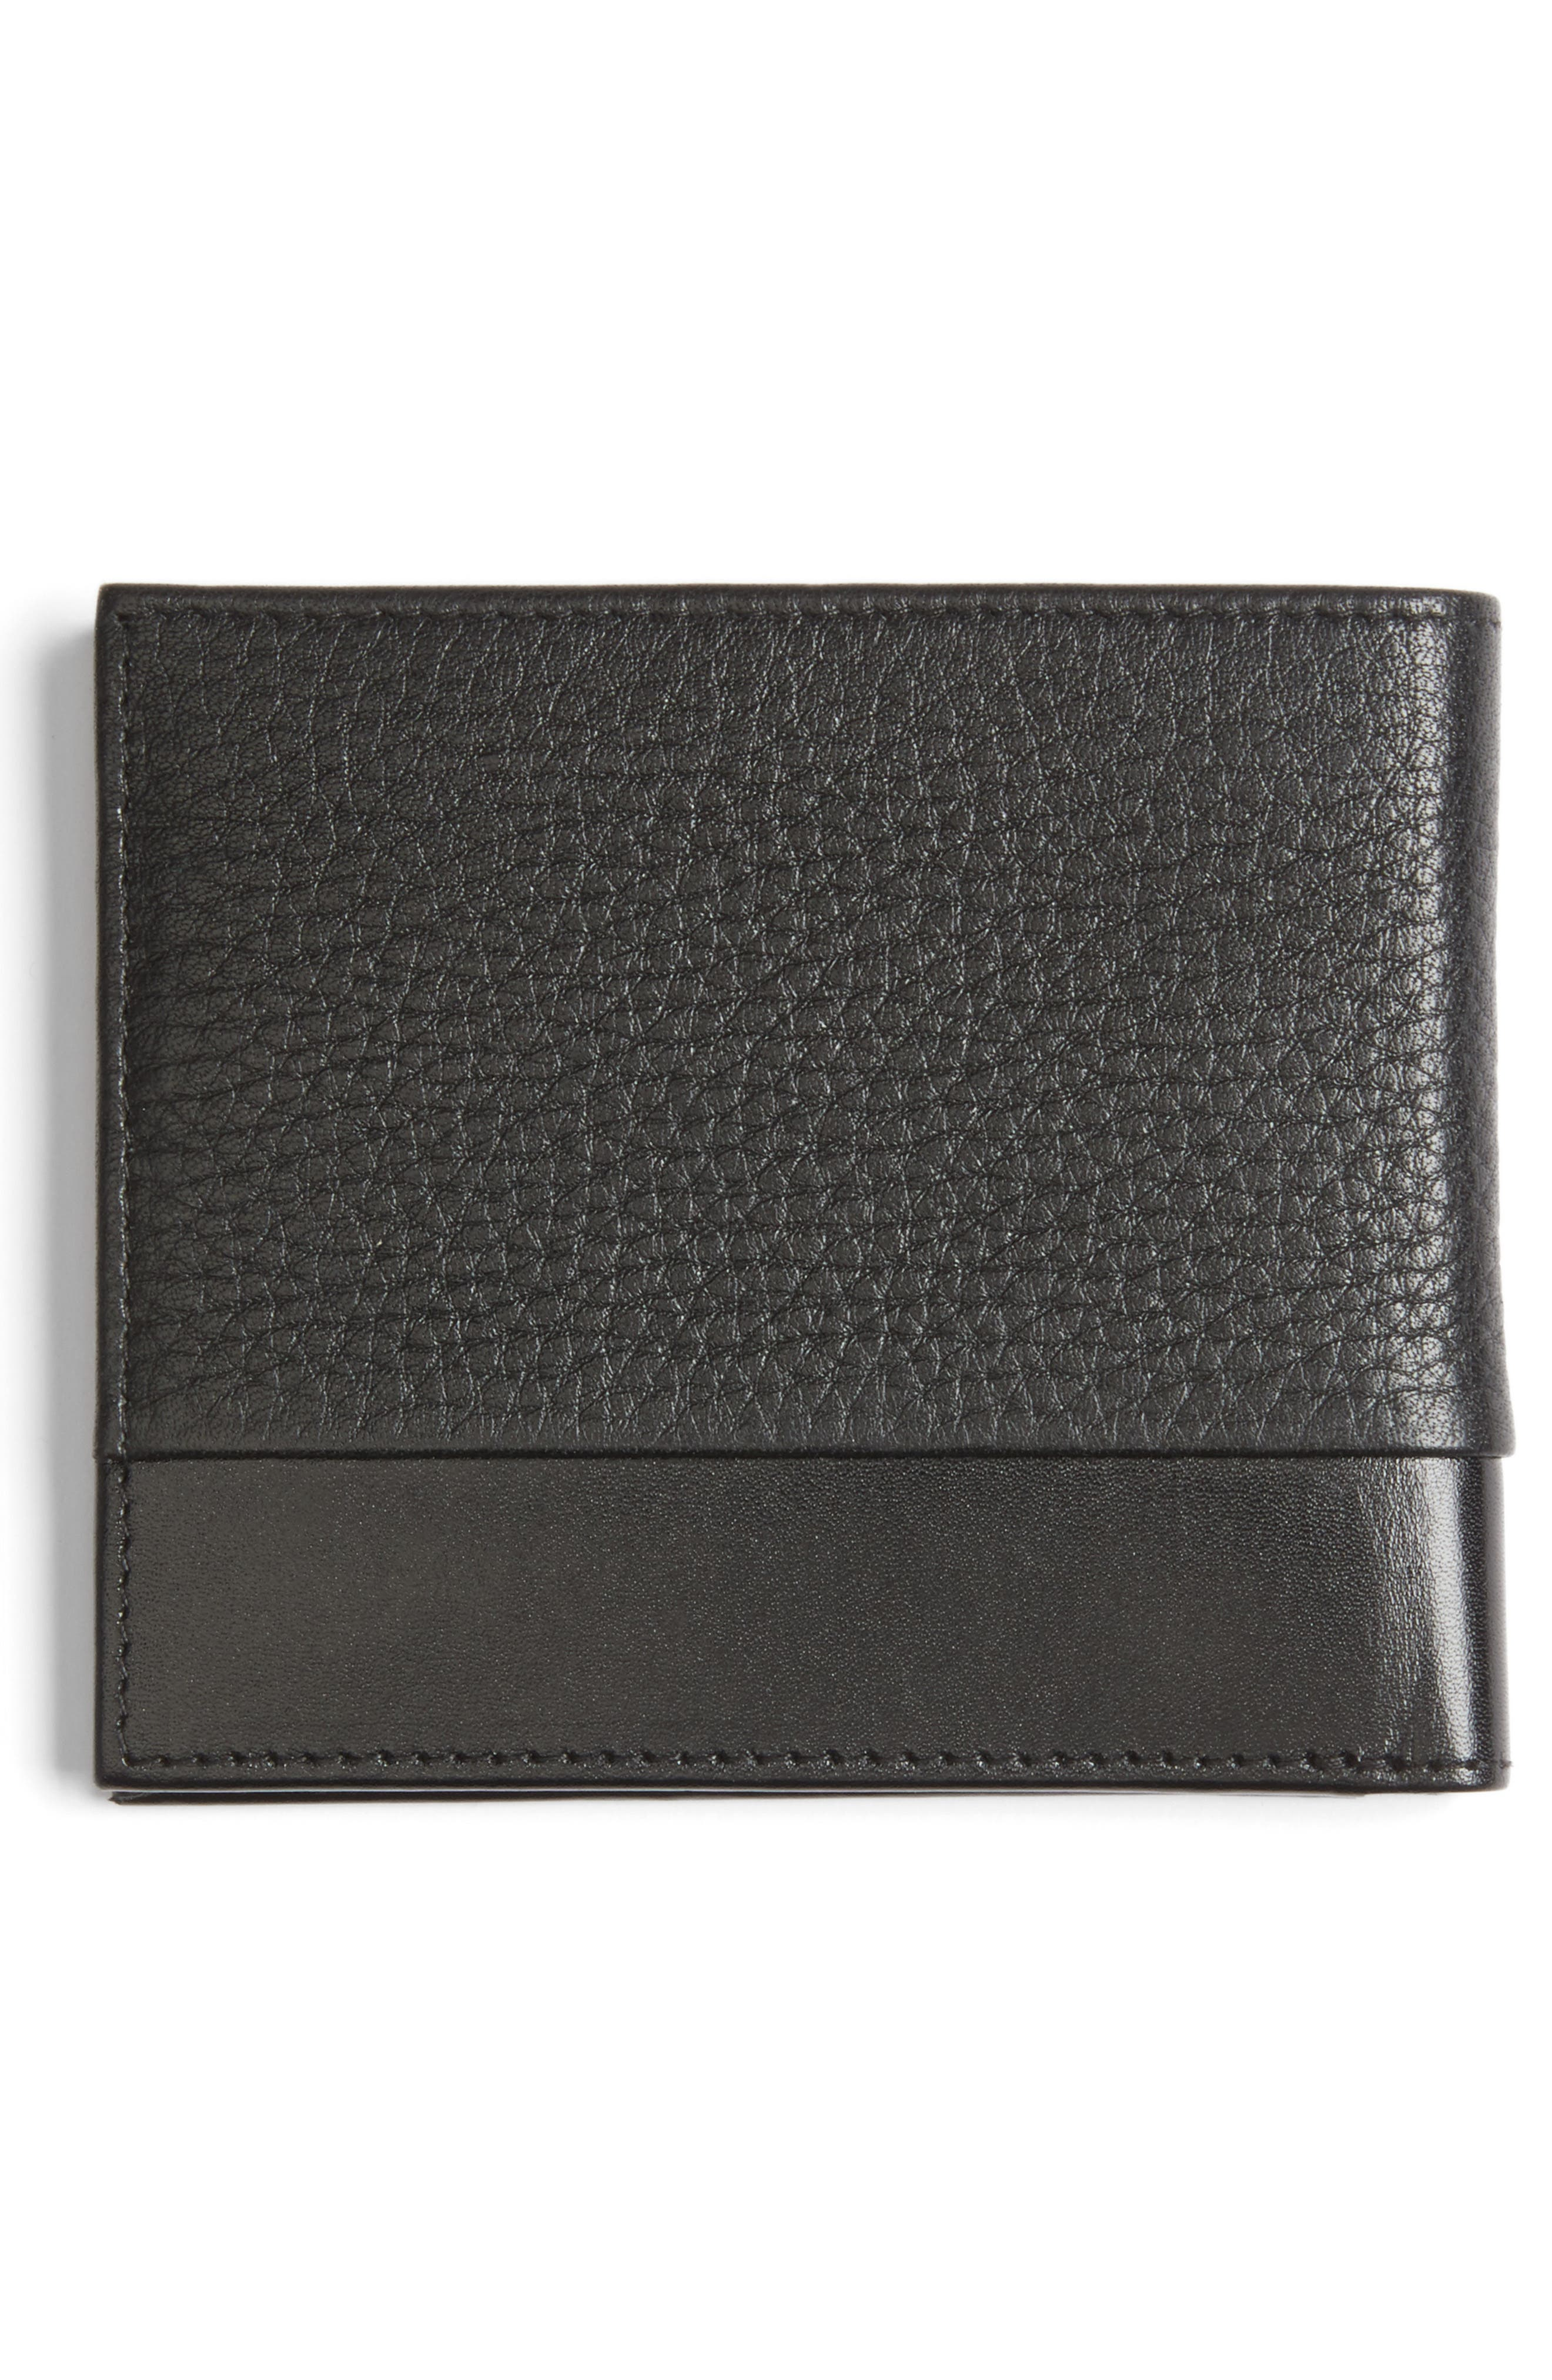 Mixdup Leather Wallet,                             Alternate thumbnail 3, color,                             001